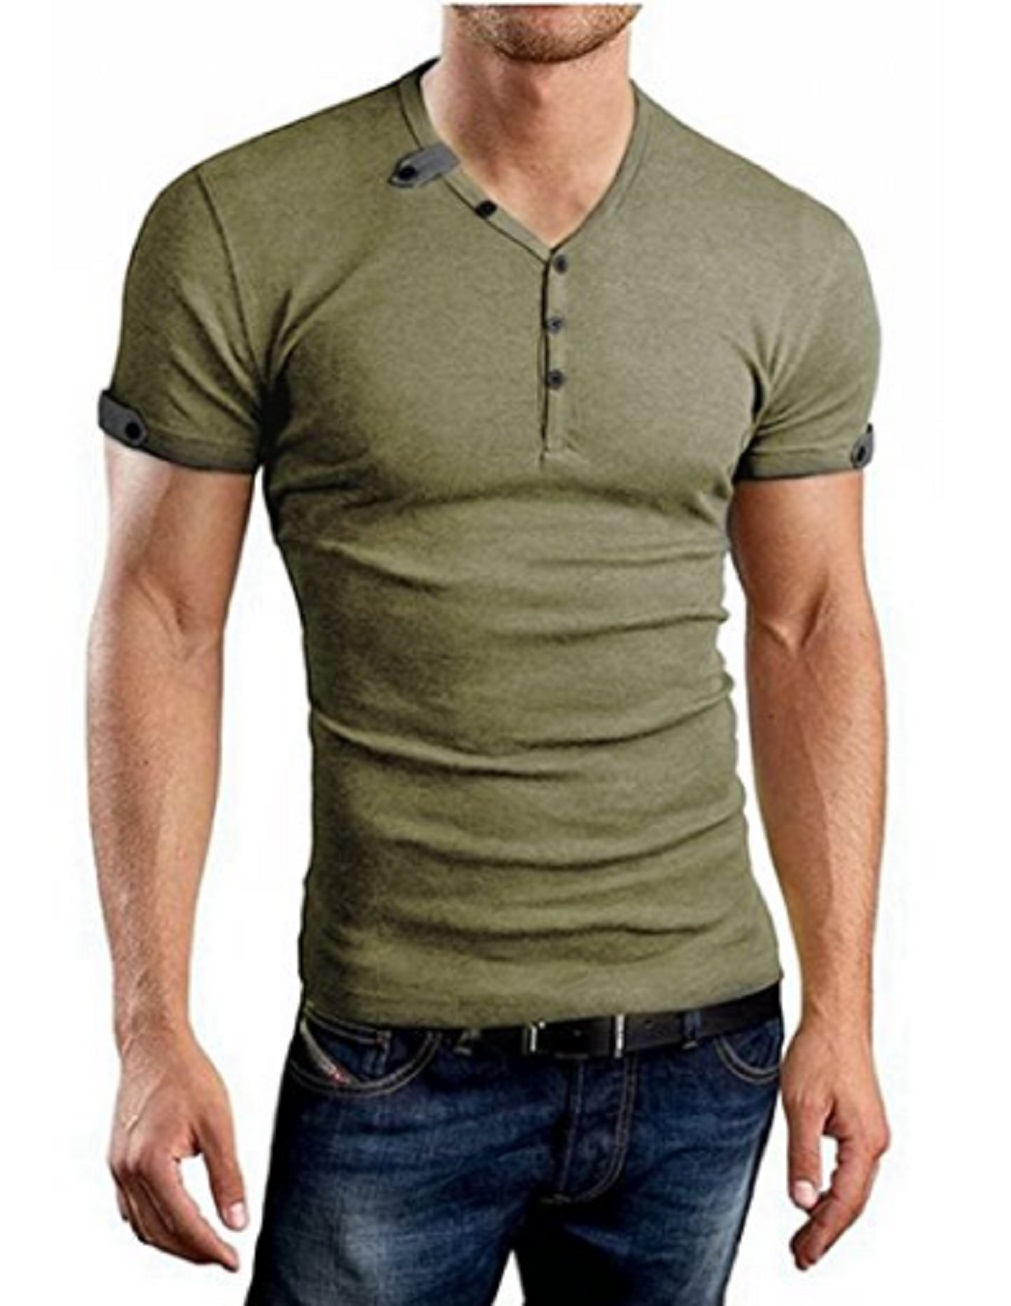 249a7e70 New 2018 Summer Men's Slim Fit V Neck Short Sleeve Muscle Tee T-shirt Casual